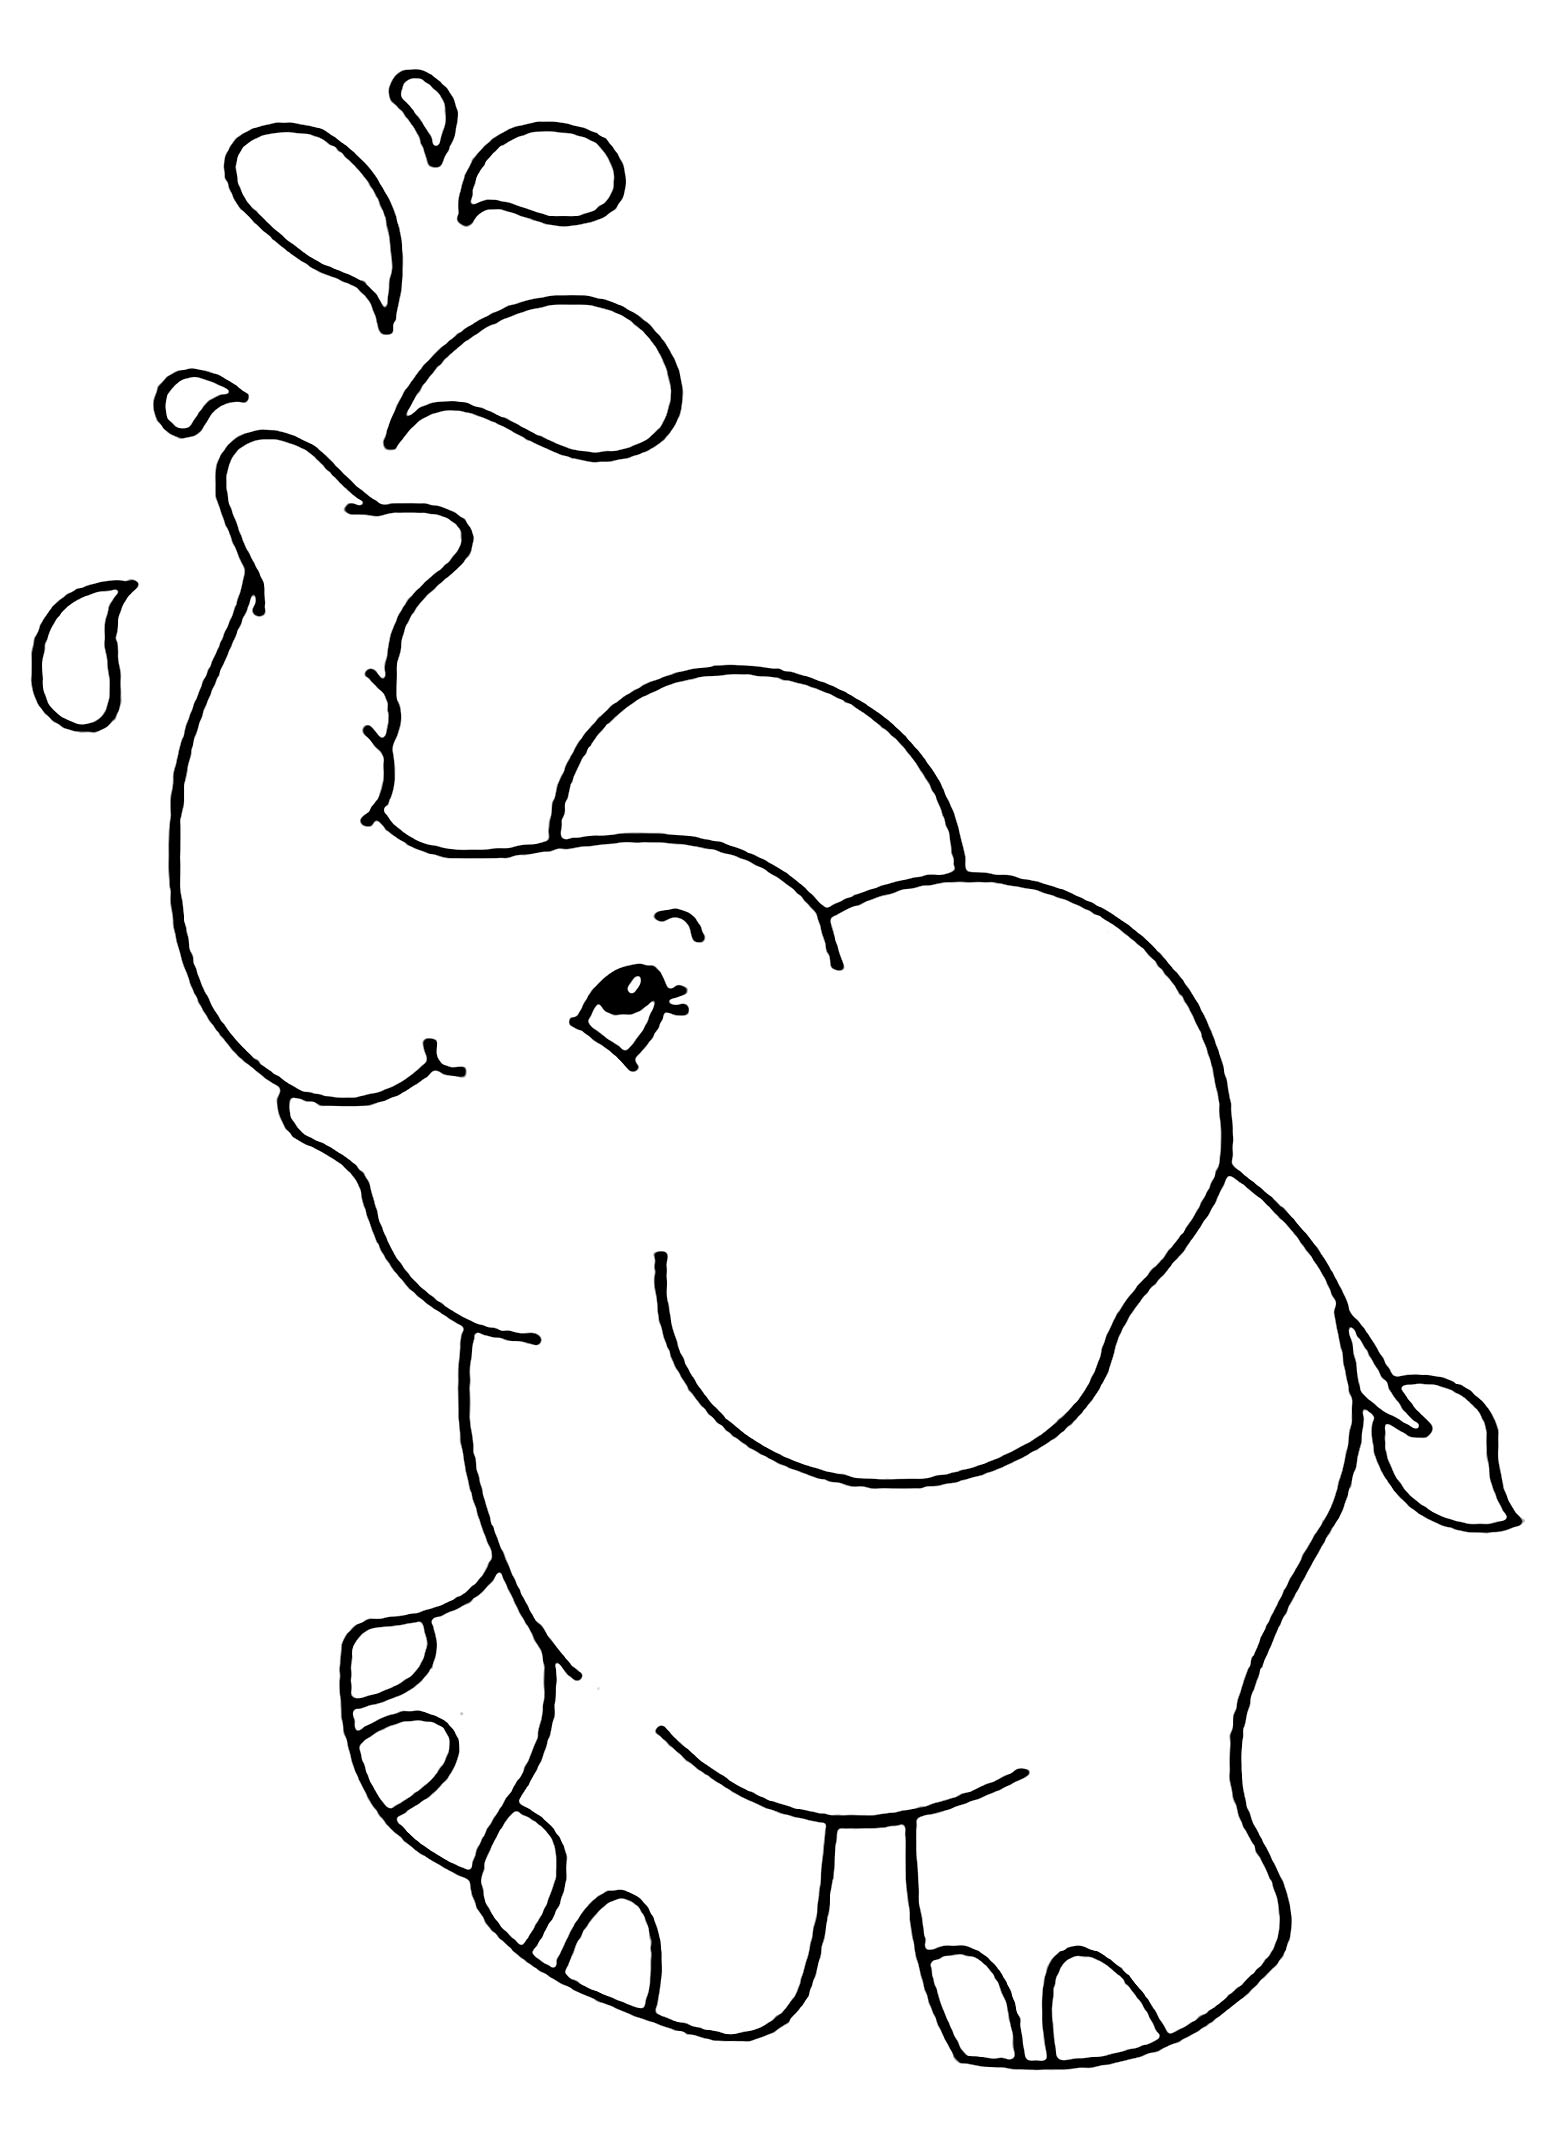 elephant coloring sheets printable elephant coloring pages printable free printable kids elephant sheets coloring printable